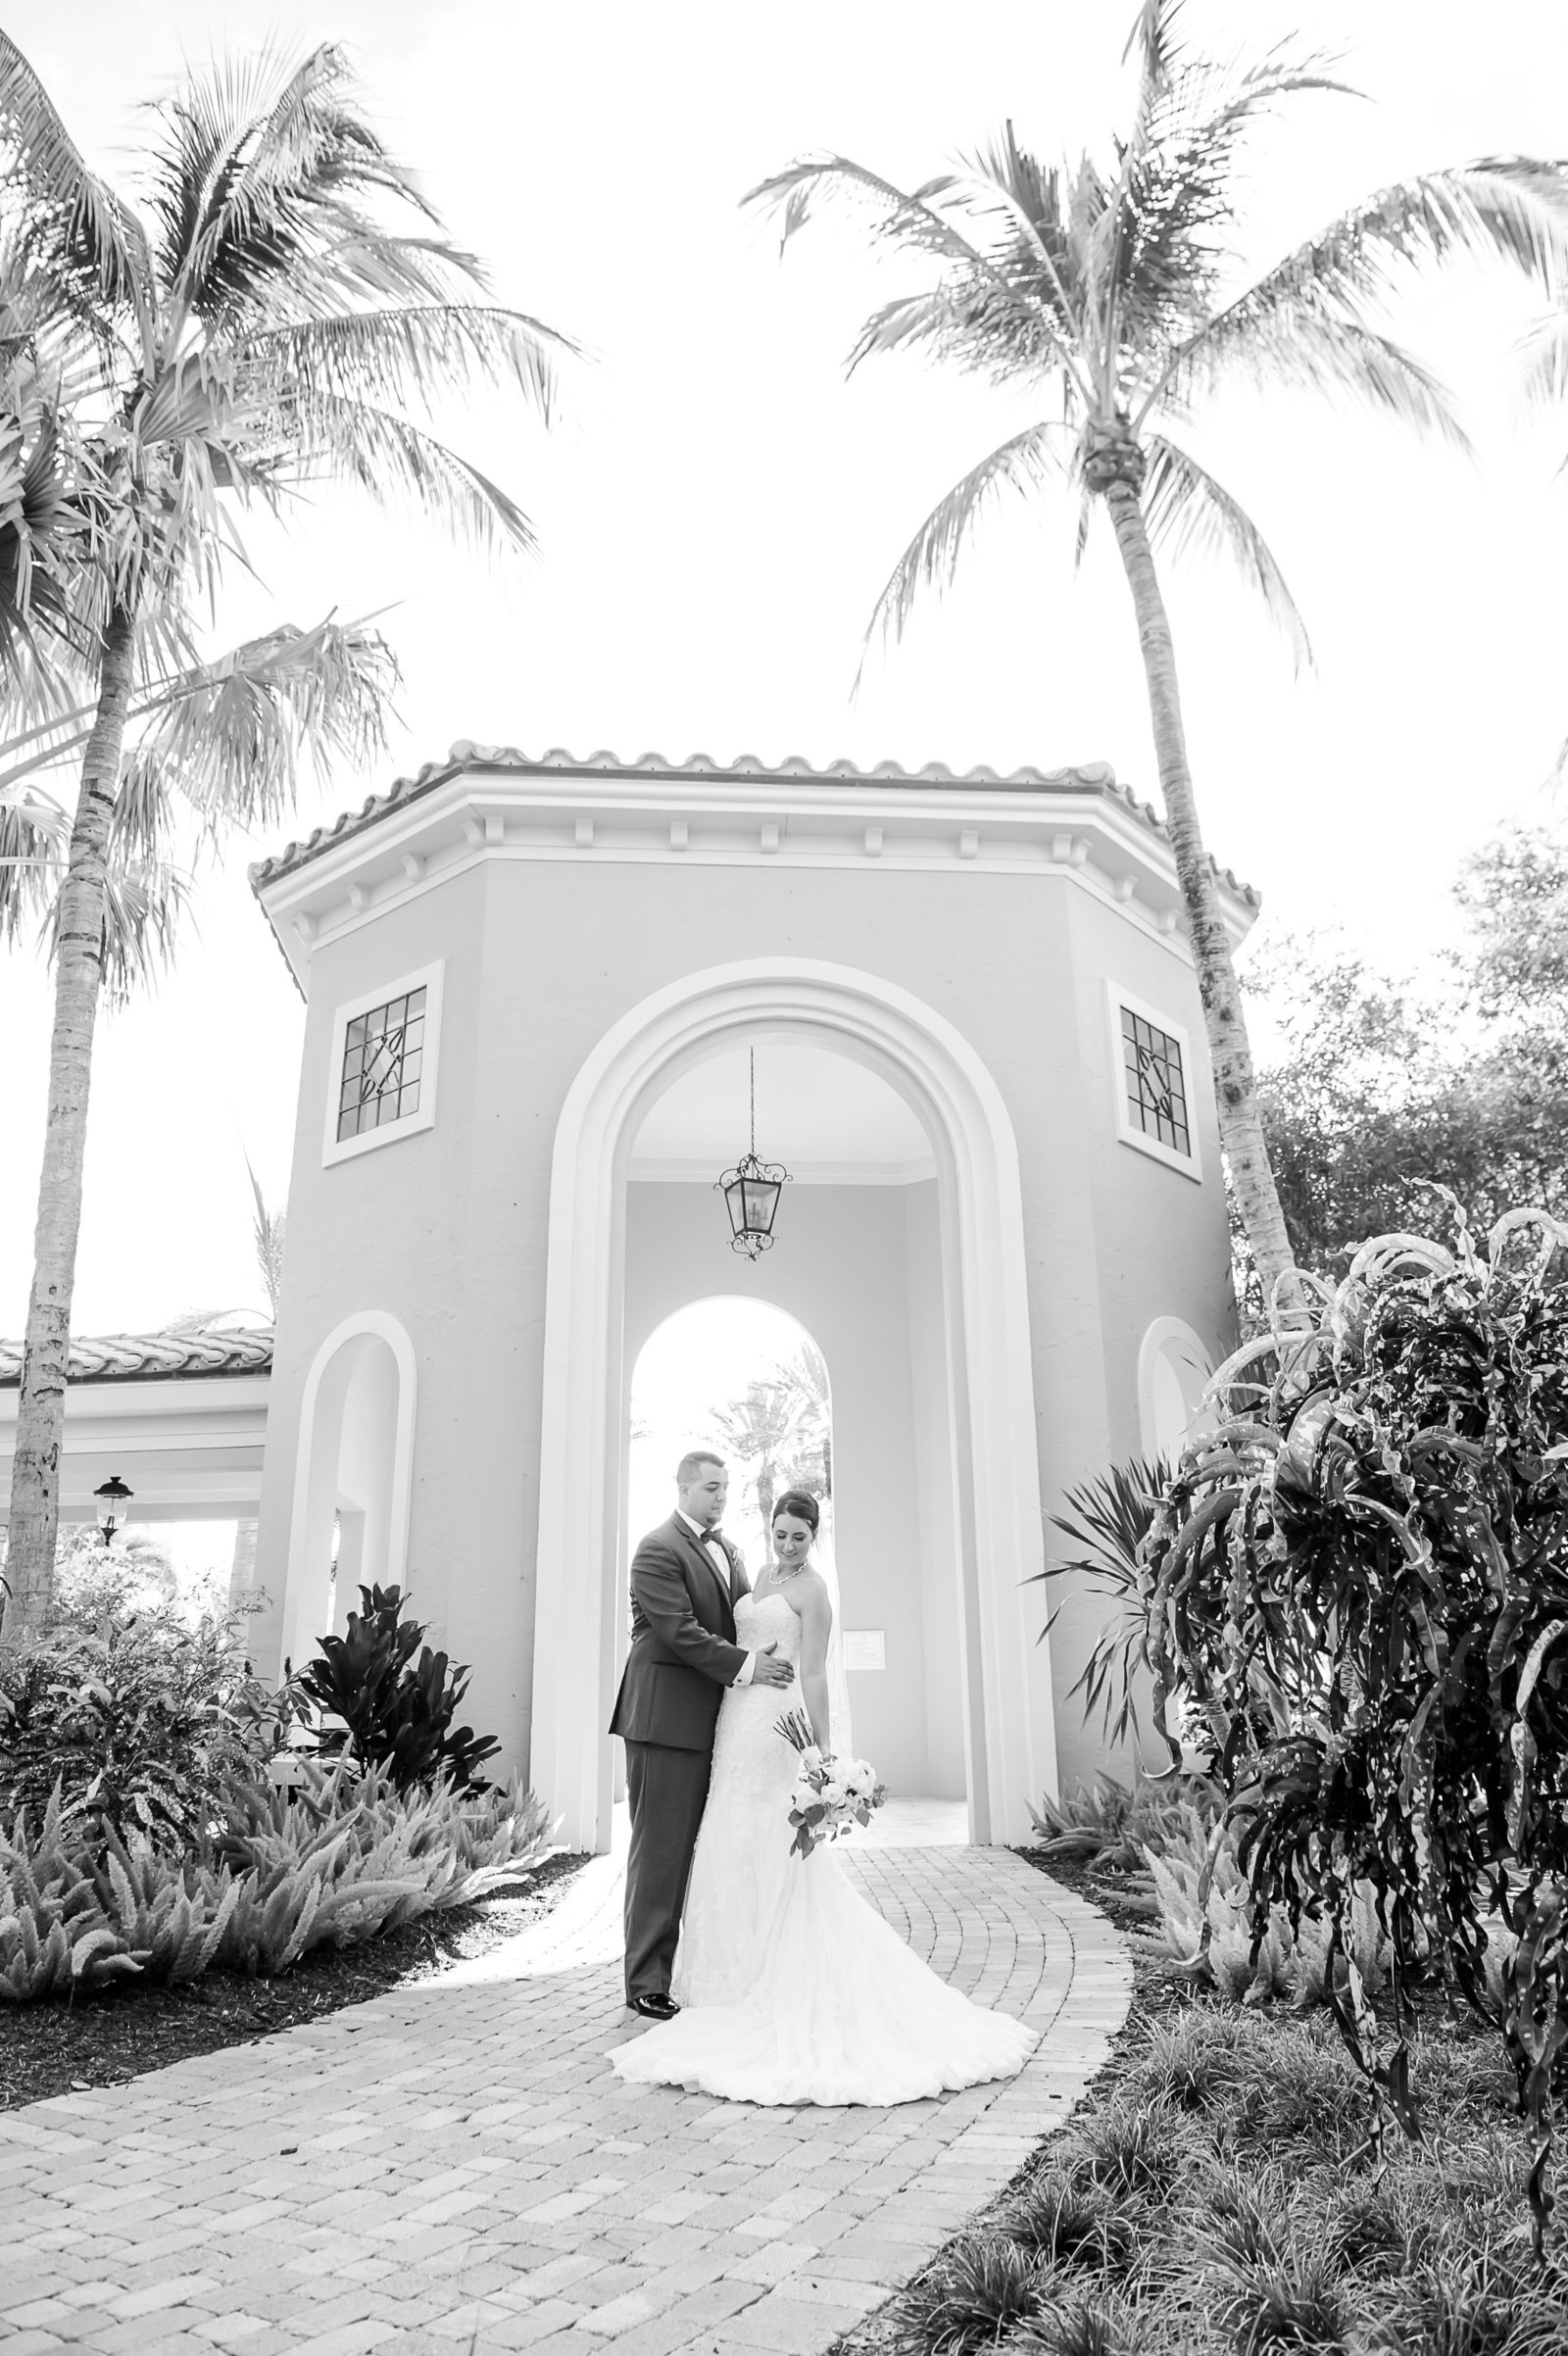 Wedding Architecture - Country Club at Mirasol Wedding - Palm Beach Wedding Photography by Palm Beach Photography, Inc.